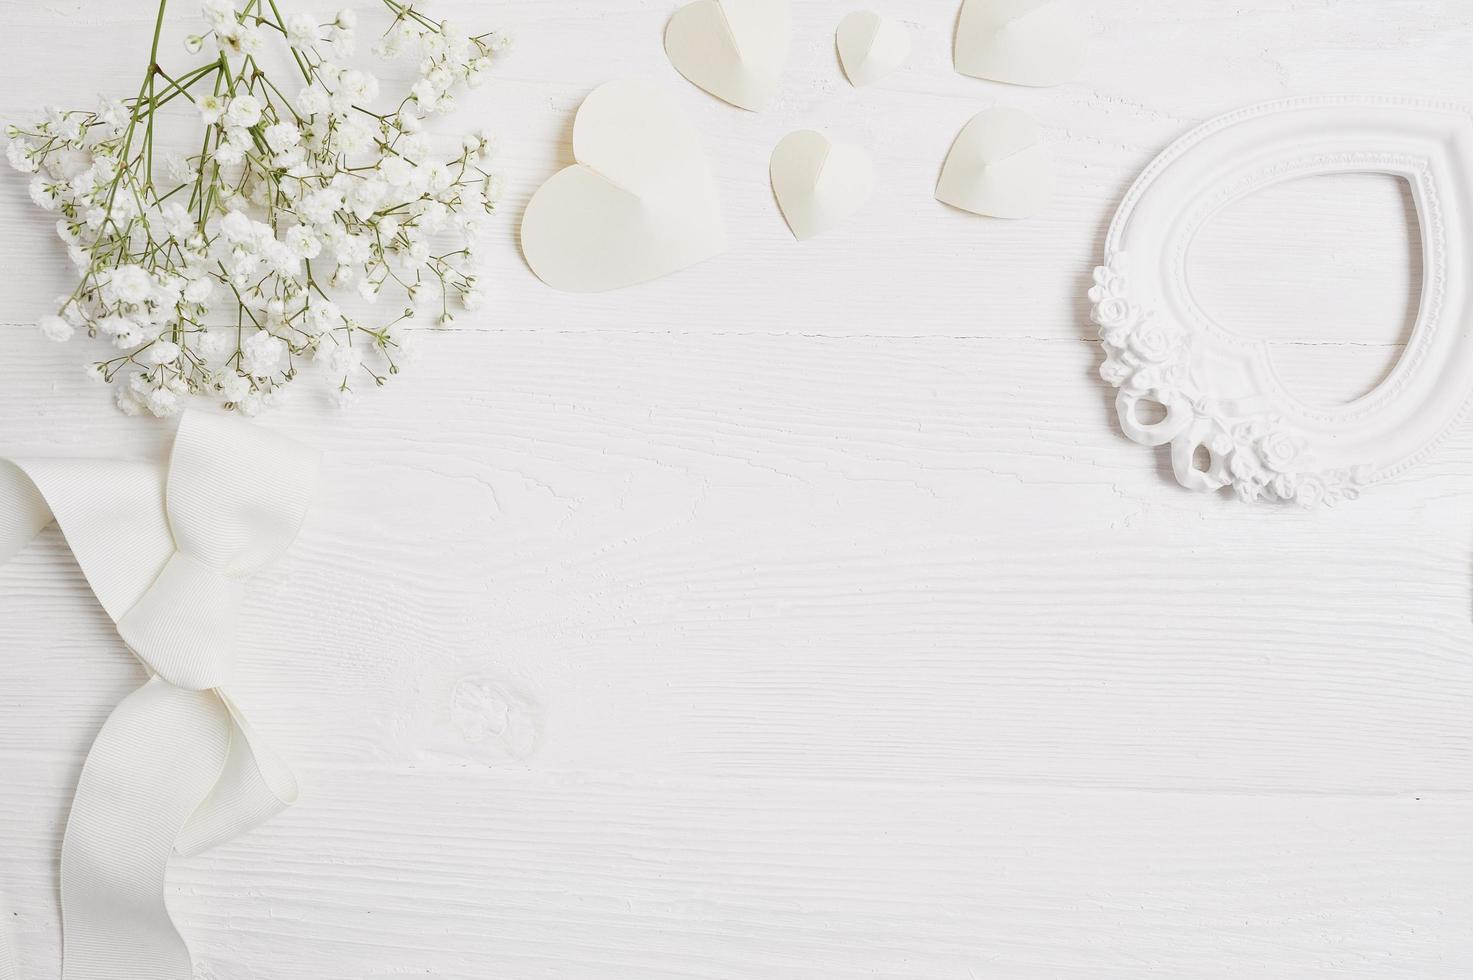 Mockup background with flowers and paper hearts photo